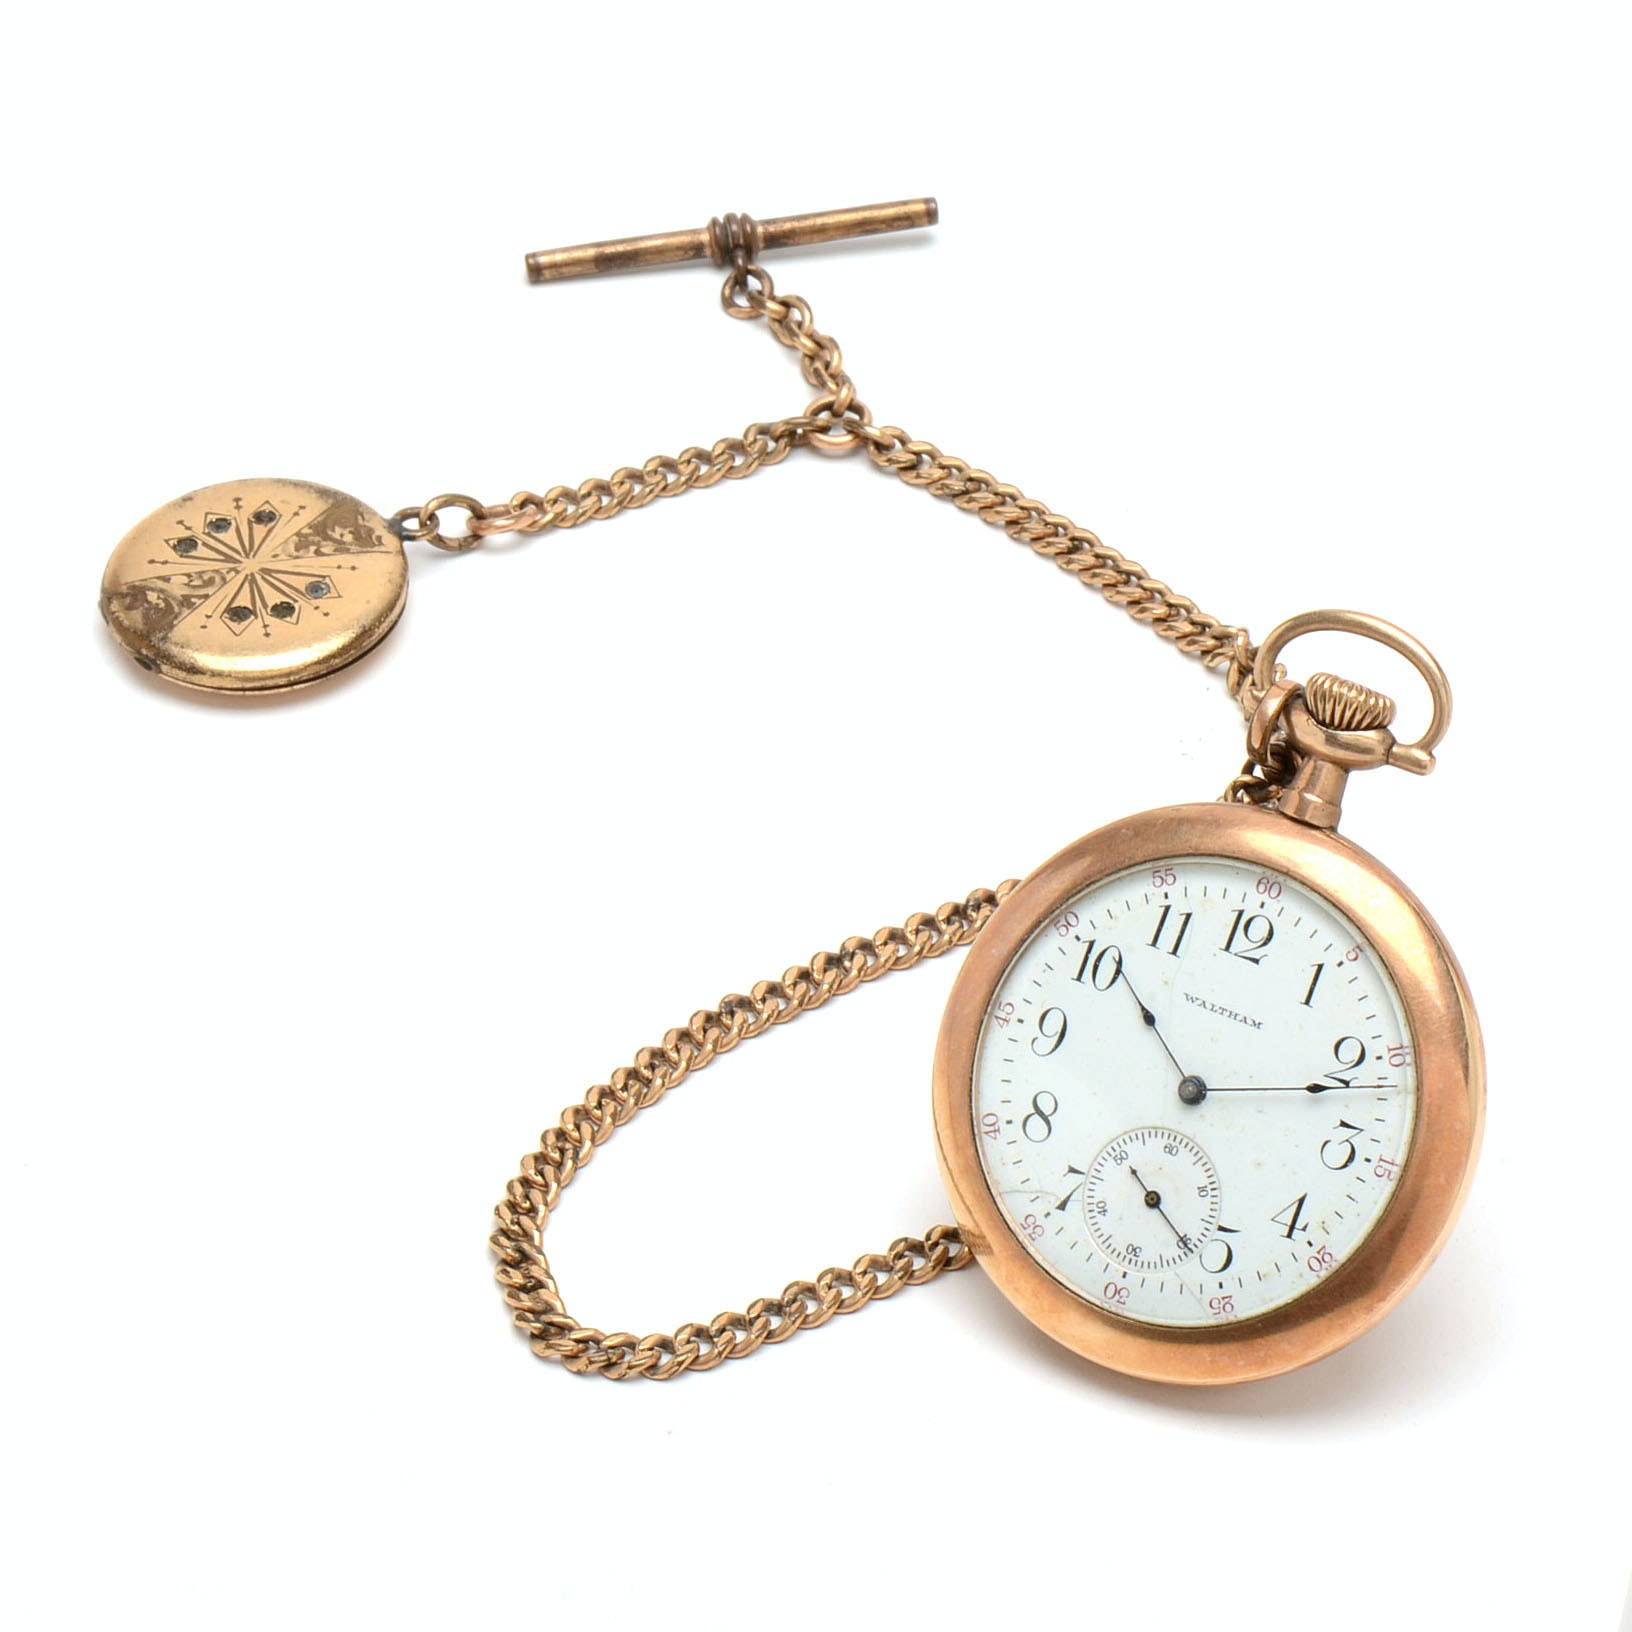 1910 Waltham Pocket Watch with Fob and Locket